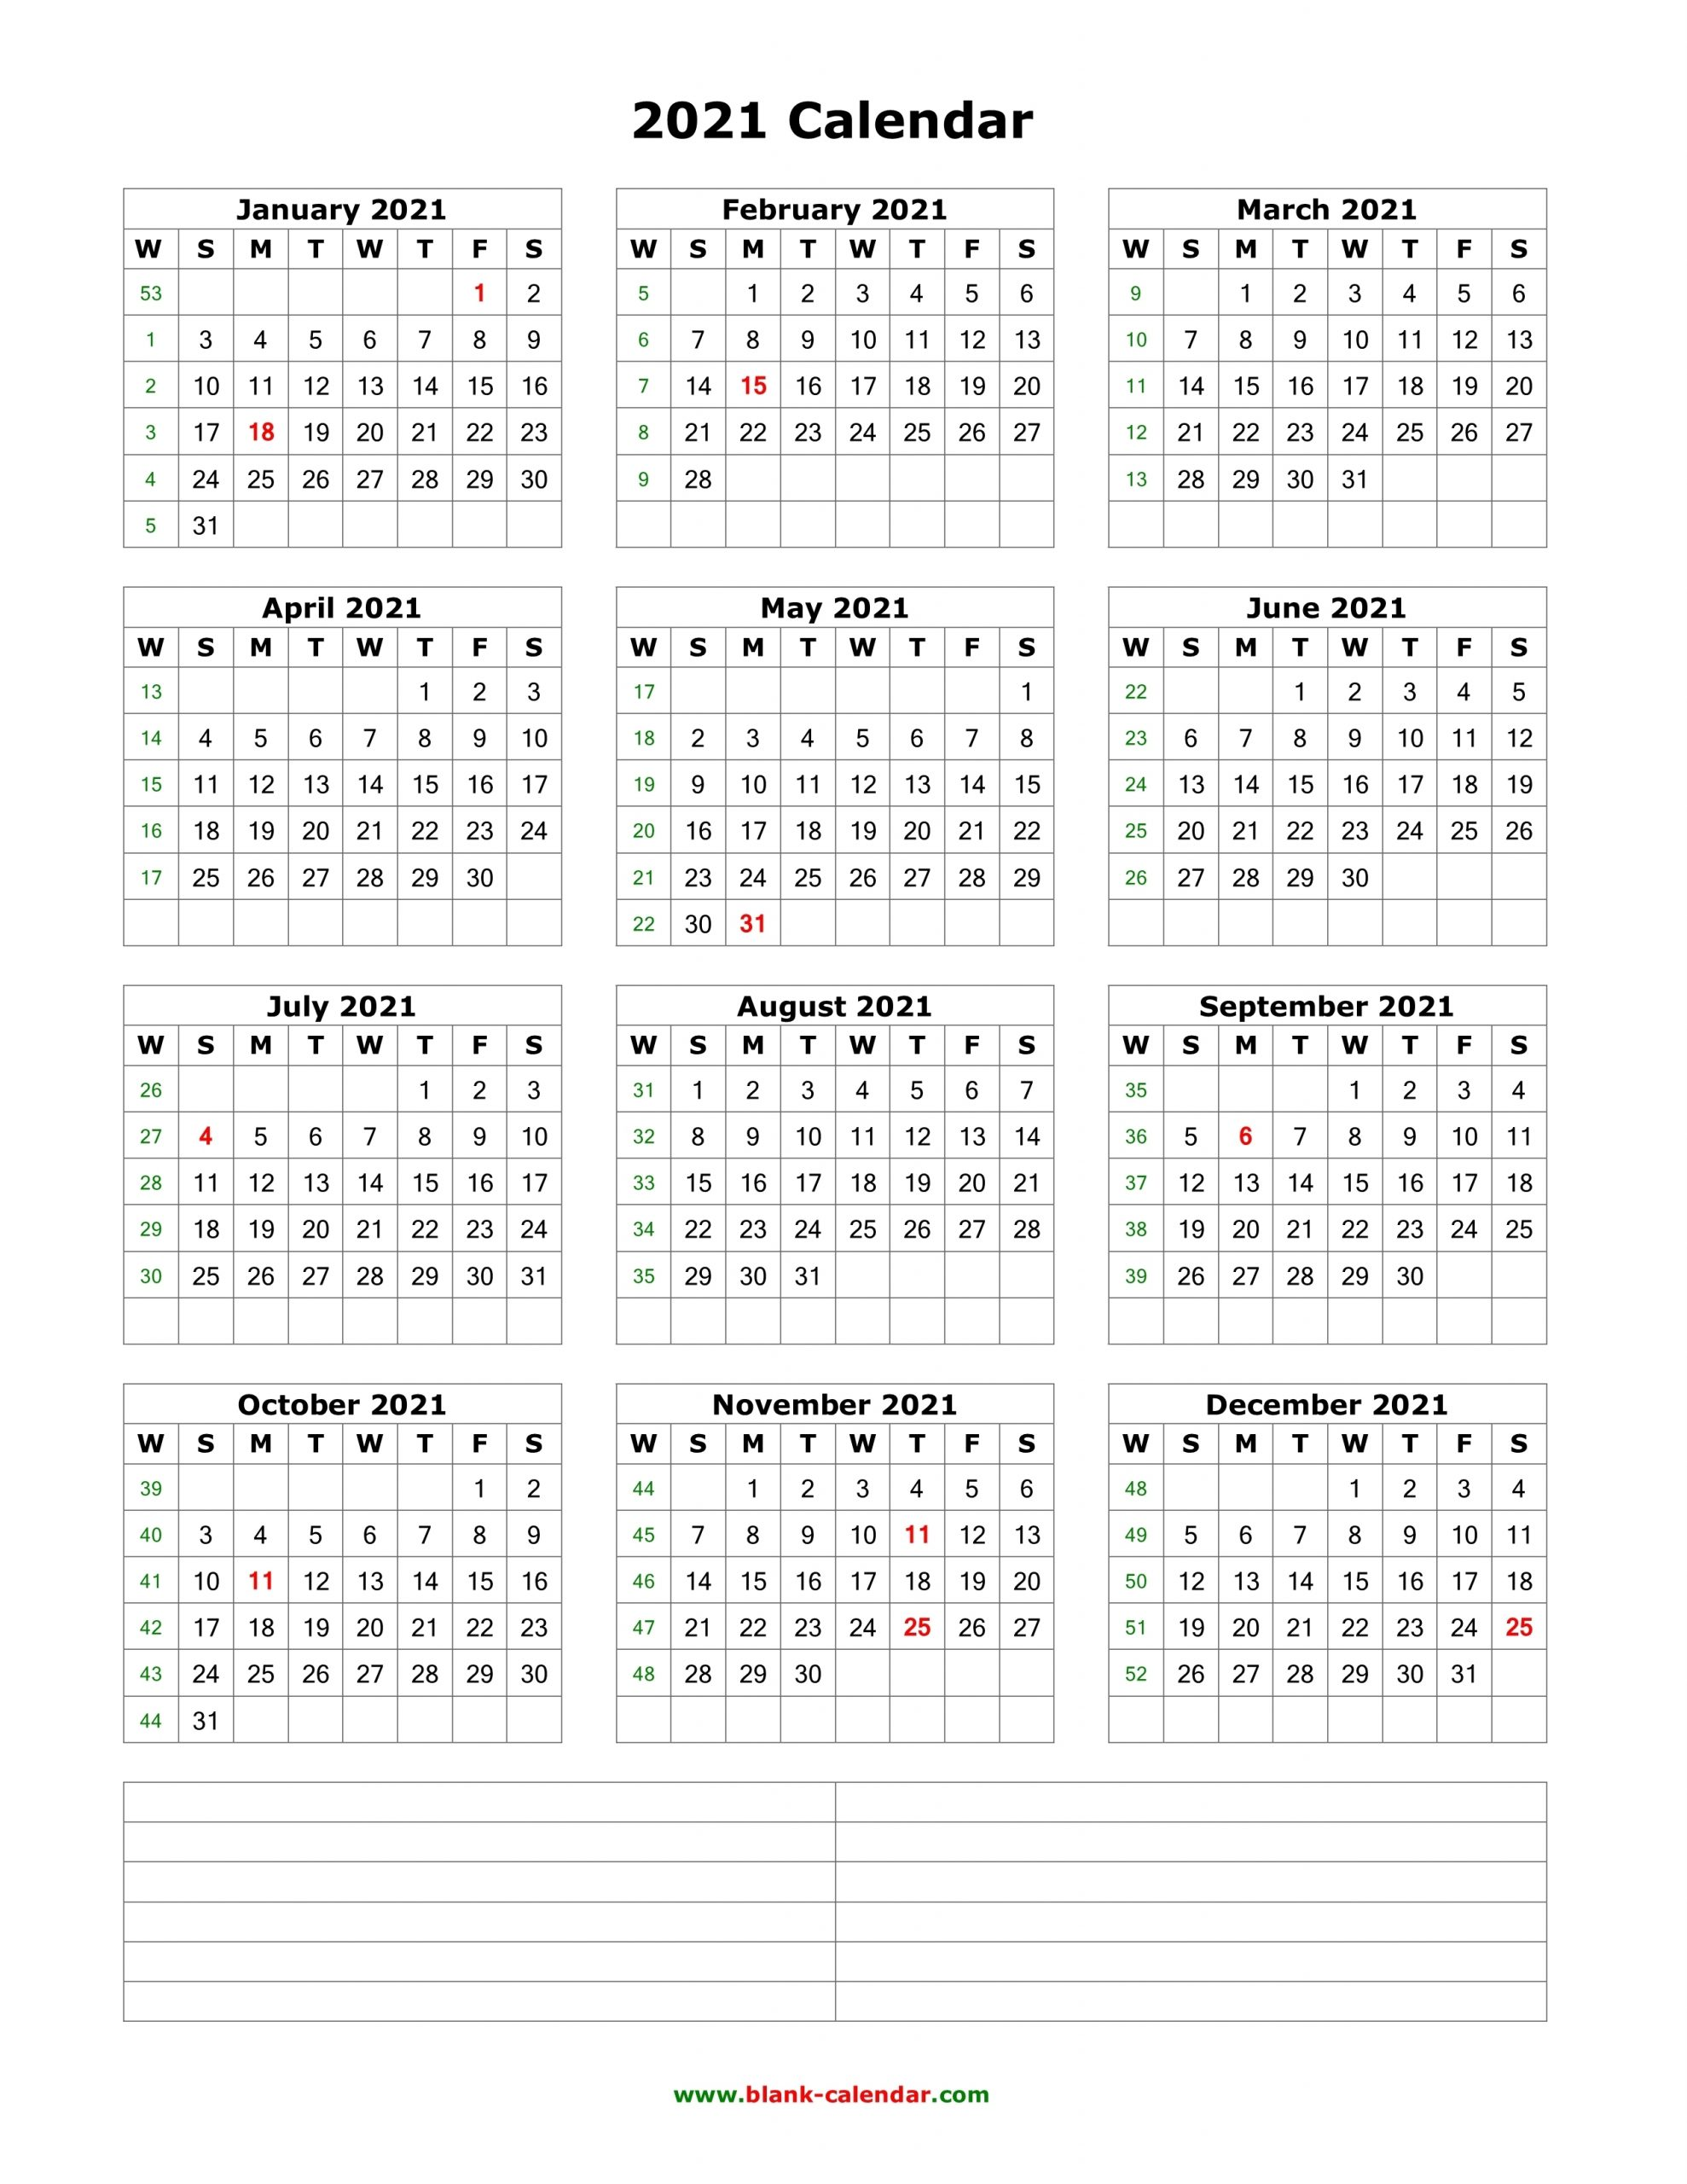 Pick 2021 Calendar Spaces